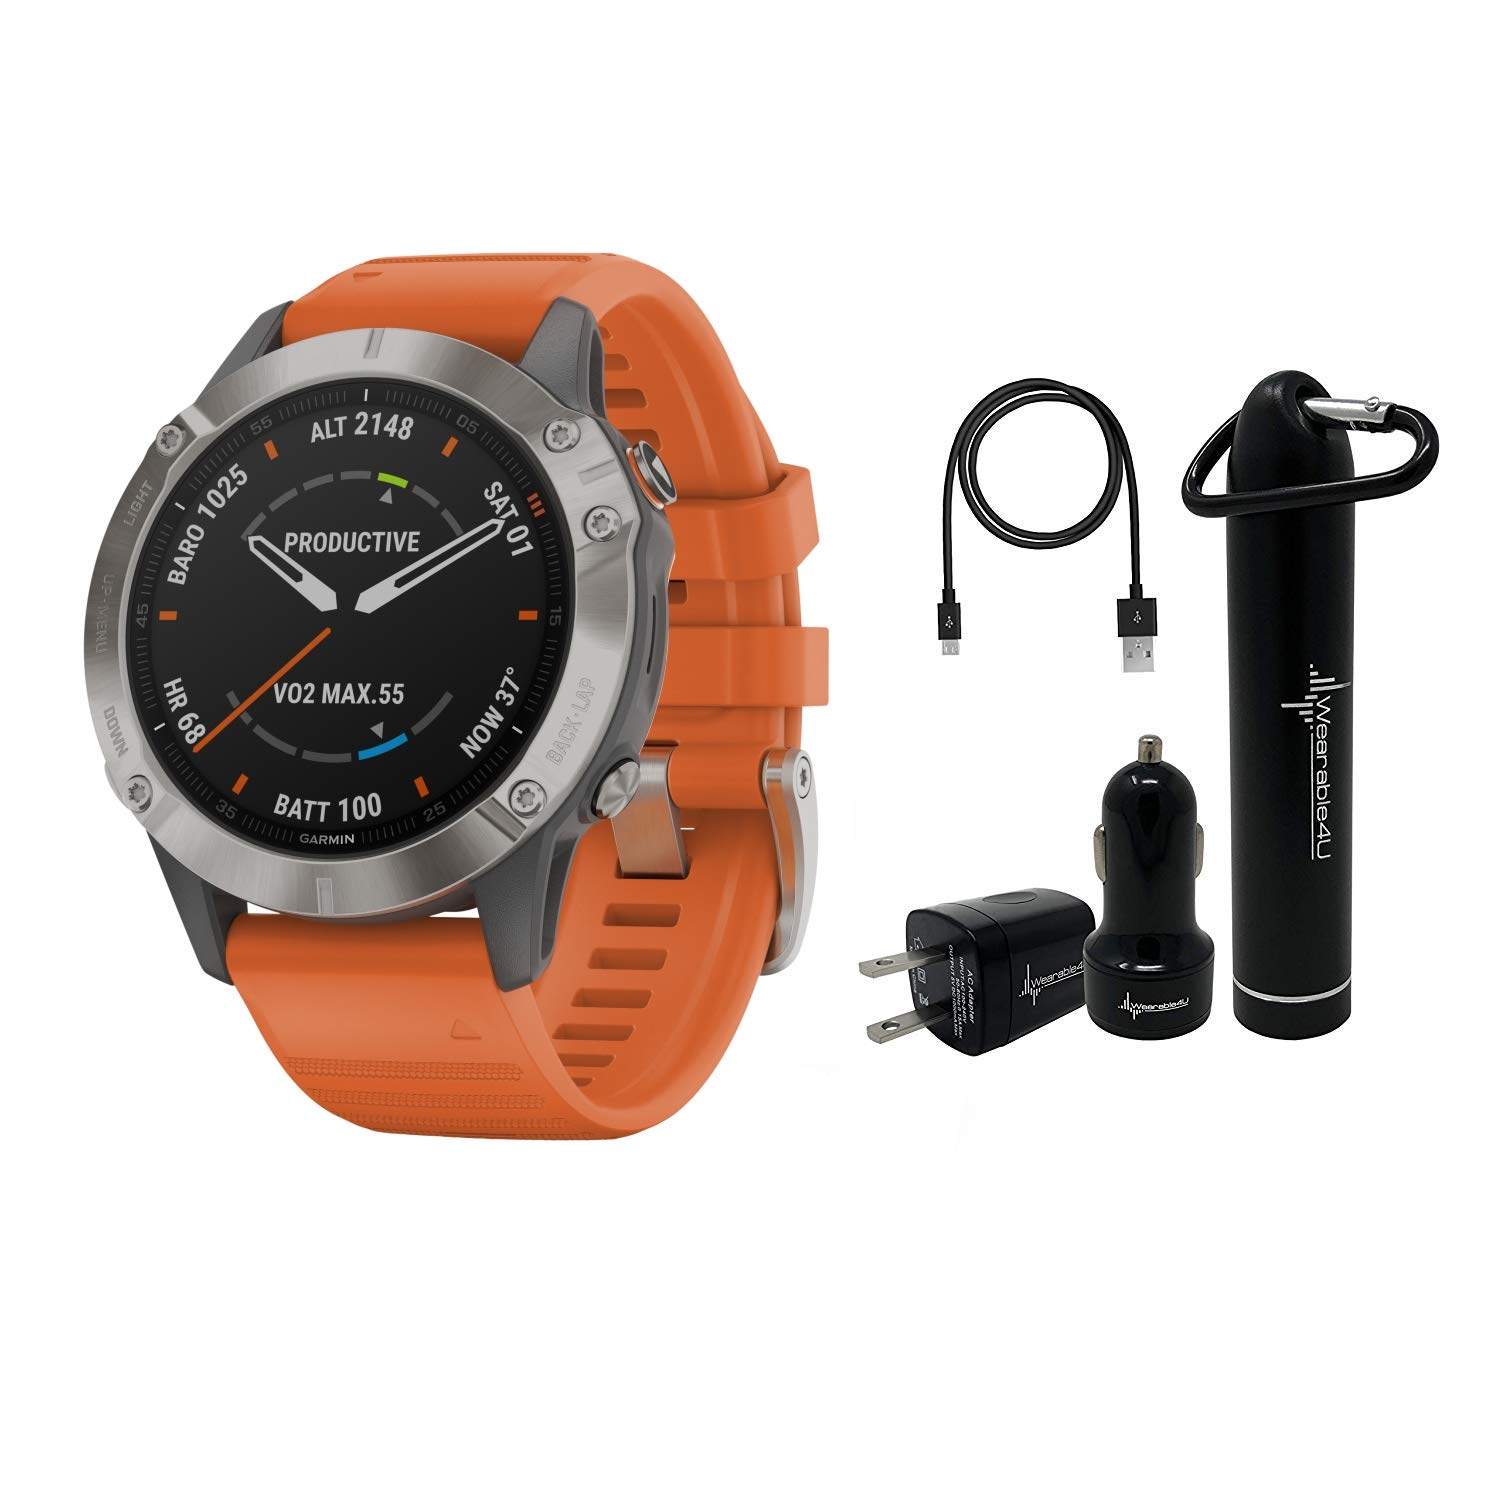 Garmin Fenix 6 Premium Multisport GPS Watch with Pulse Ox with Included Wearable4U Power Pack Bundle (Sapphire/Titanium with Ember Orange Band) by Wearable4U